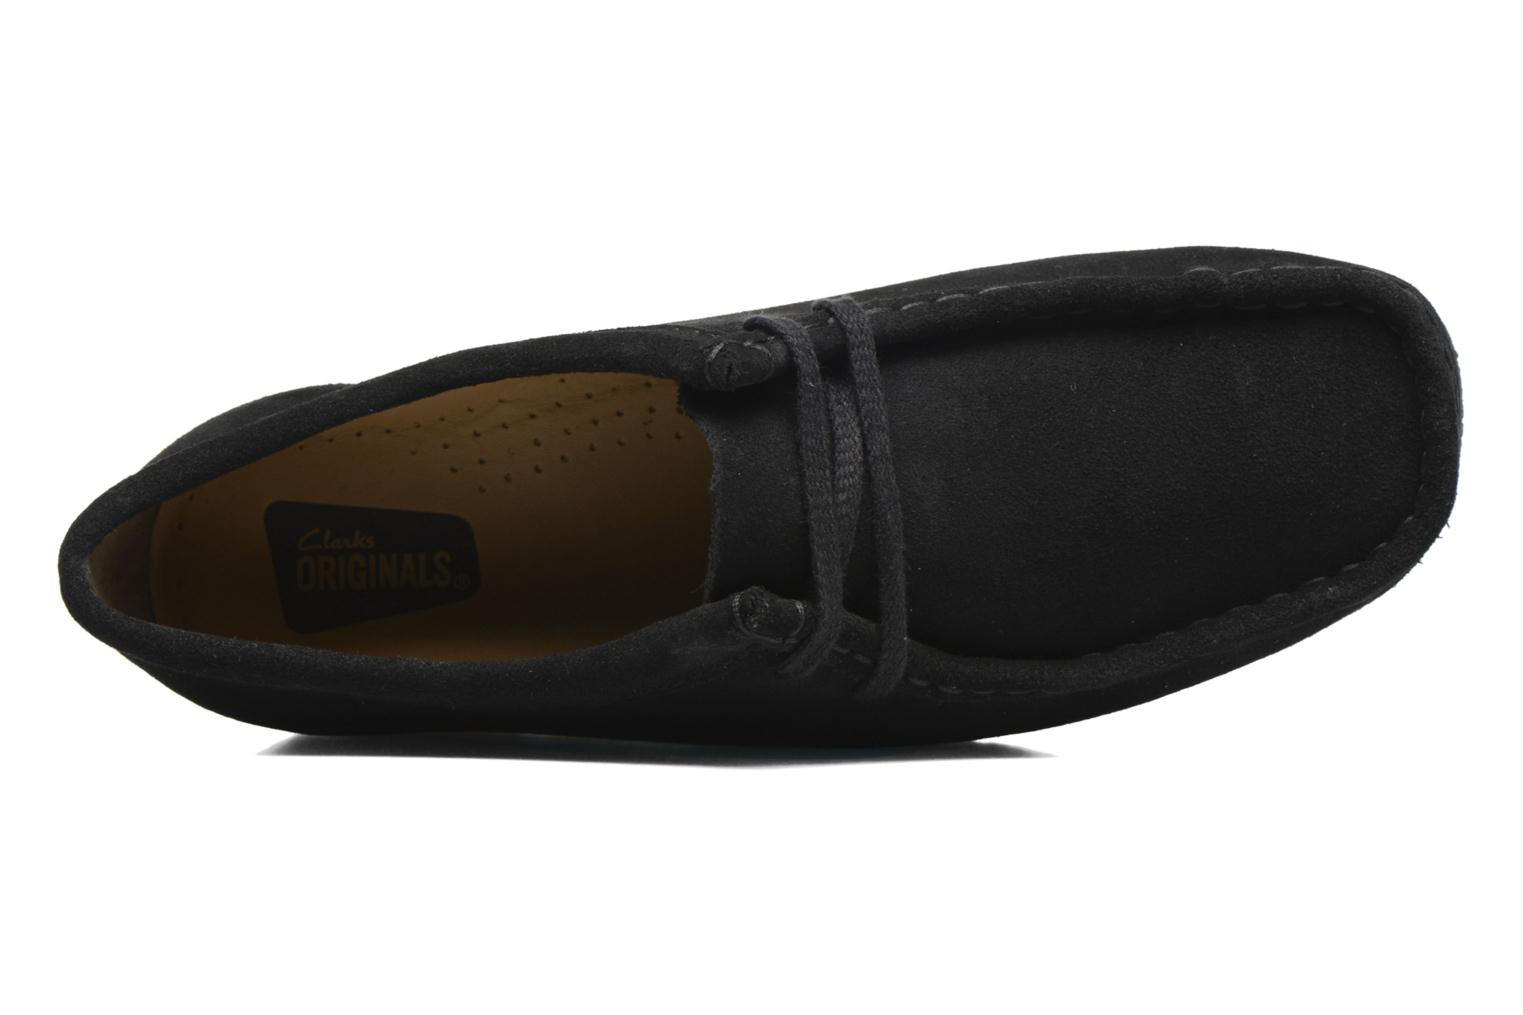 Wallabee W Black